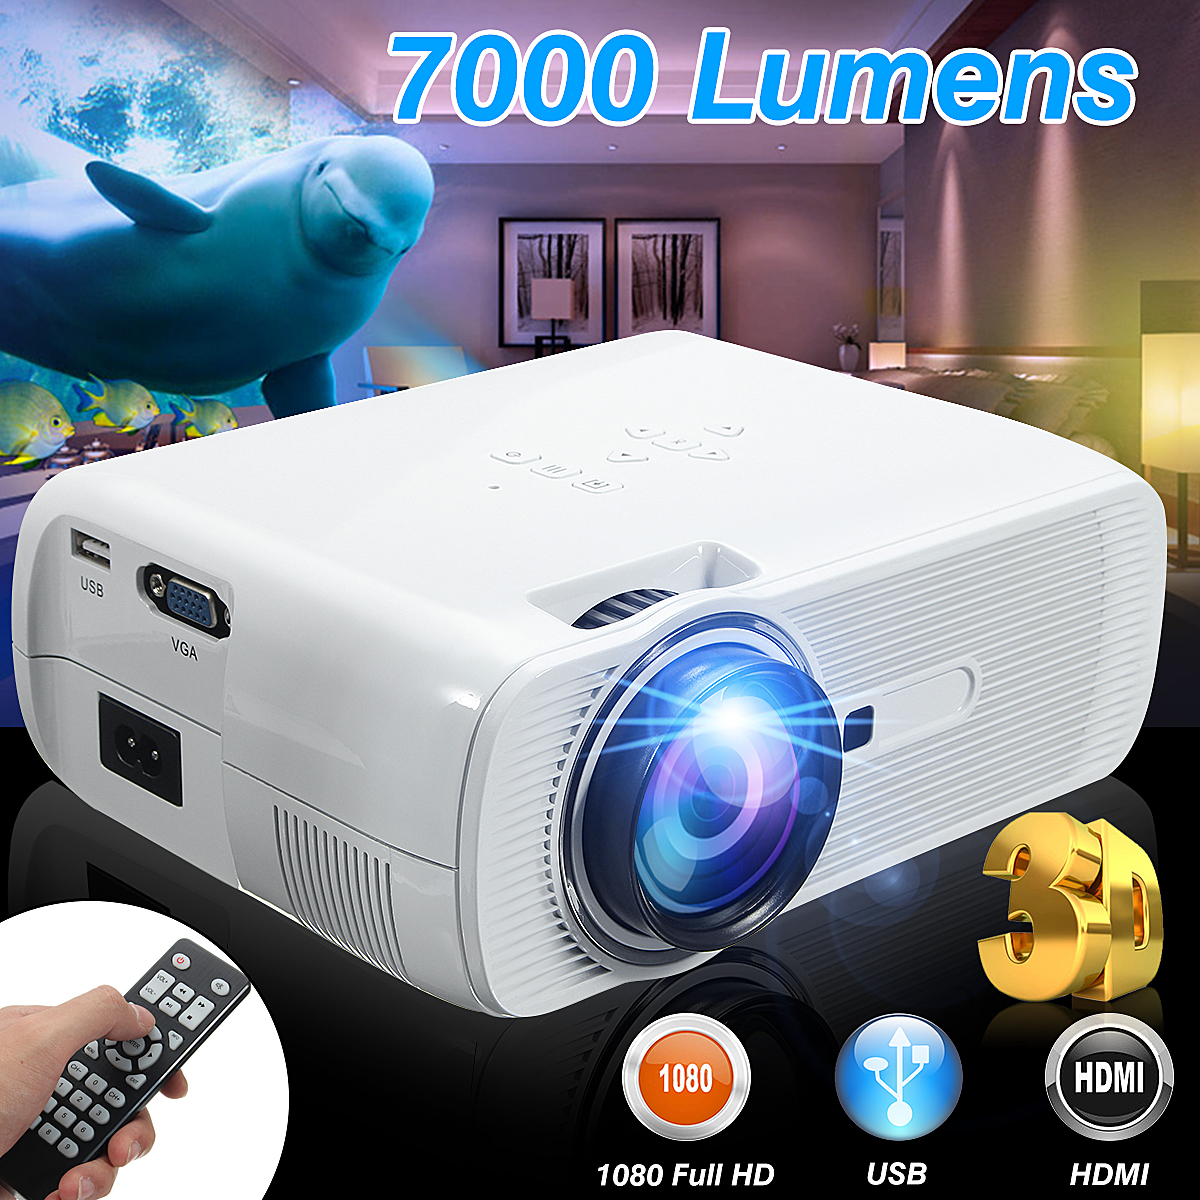 7000 Lumens HD LED Projector 3D Large Screen Home Theater Cinema LCD Wireless HDMI AV/VGA/USB/SD/HDMI/TV Multimedia Beamer hot selling mini home cinema mini portable 1080p 3d hd led projector multimedia home theater usb vga hdmi tv